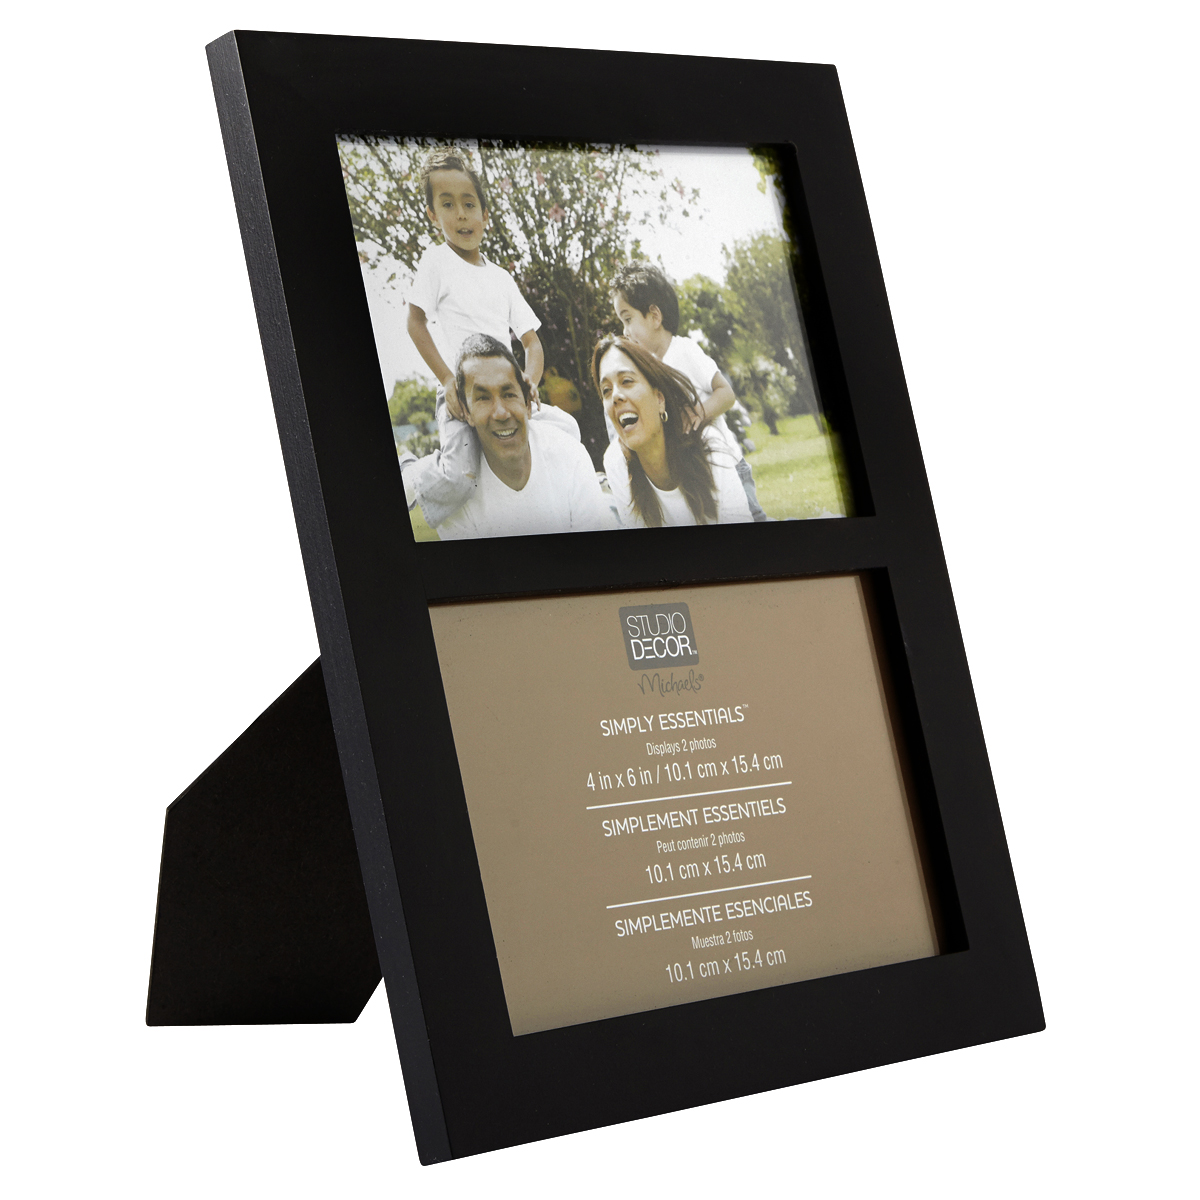 studio dcor simply essentials 2opening collage frame - Collage Photo Frames